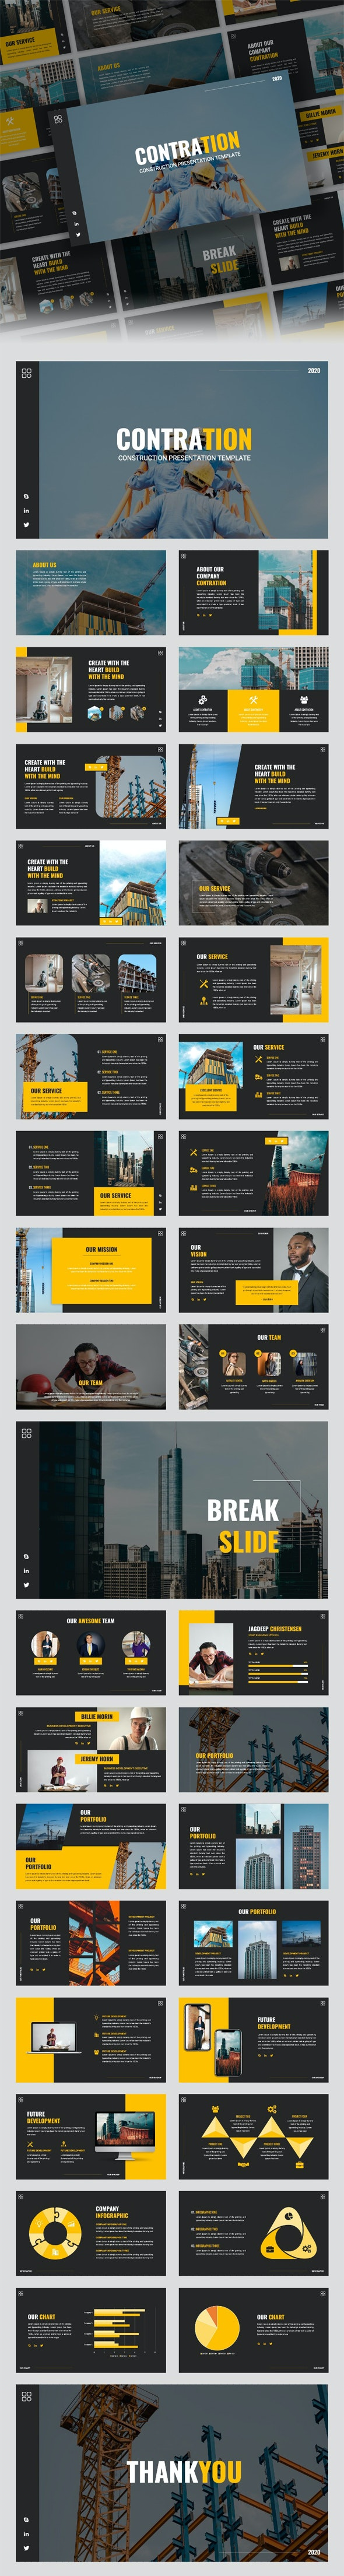 Contration - Construction Company Powerpoint Template - Business PowerPoint Templates